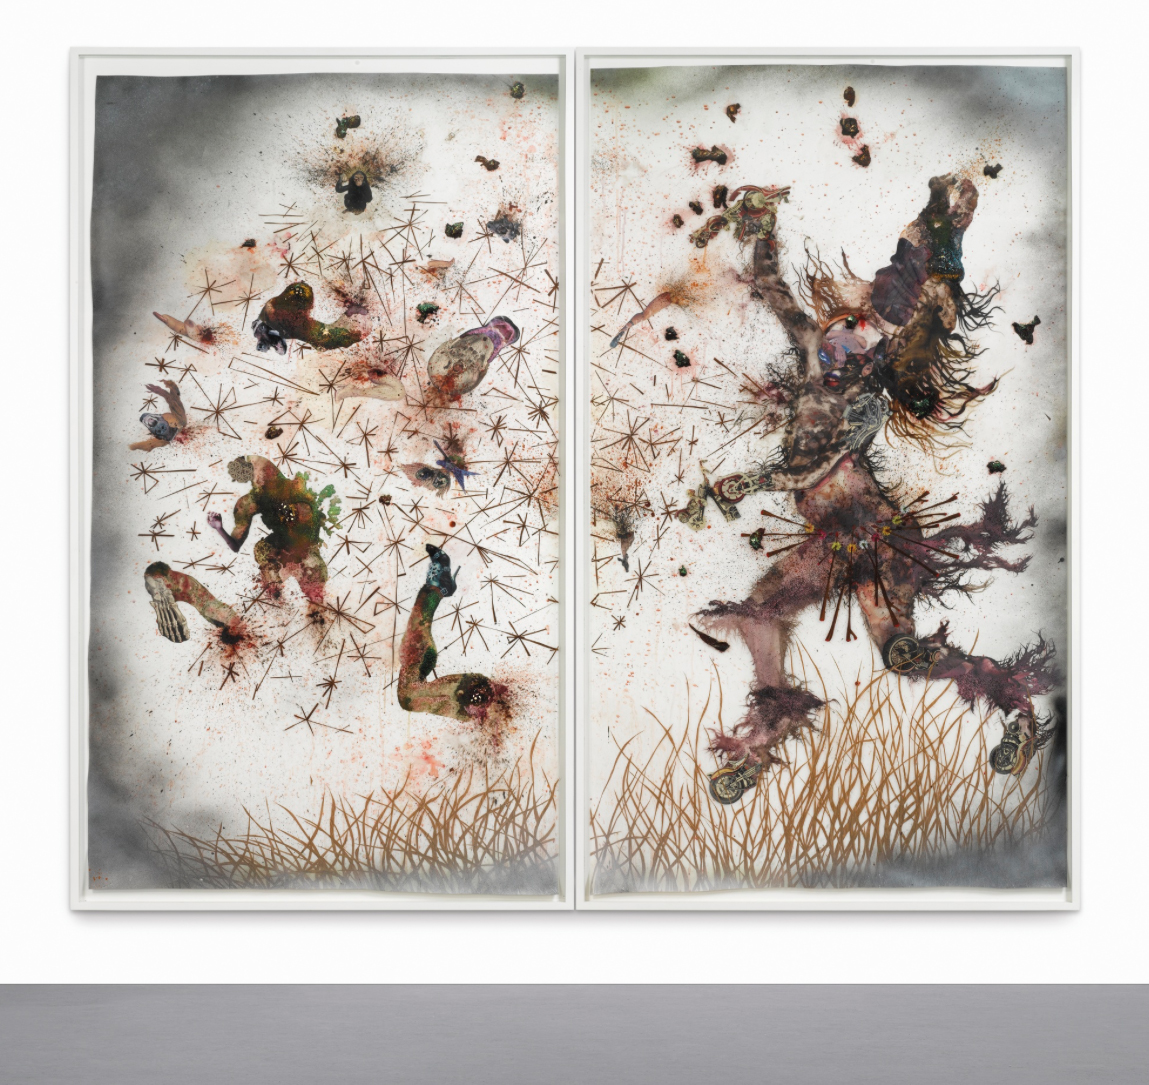 Wangechi Mutu, Try Dismantling The Little Empire Inside You